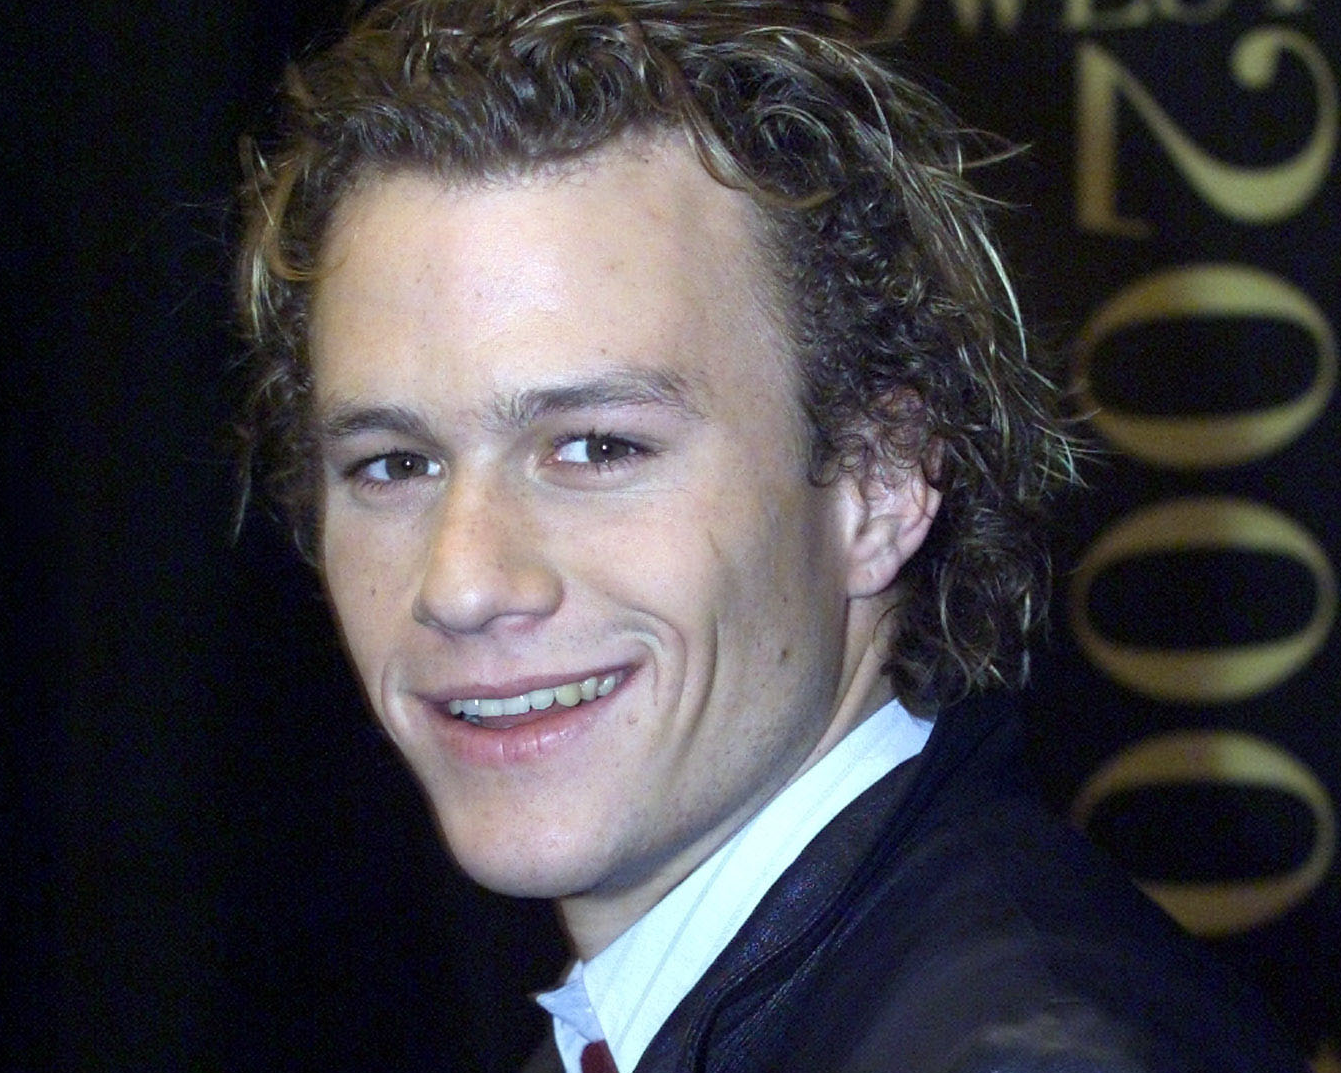 Busy philipps cries while remembering heath ledger in - Heath ledger pics ...